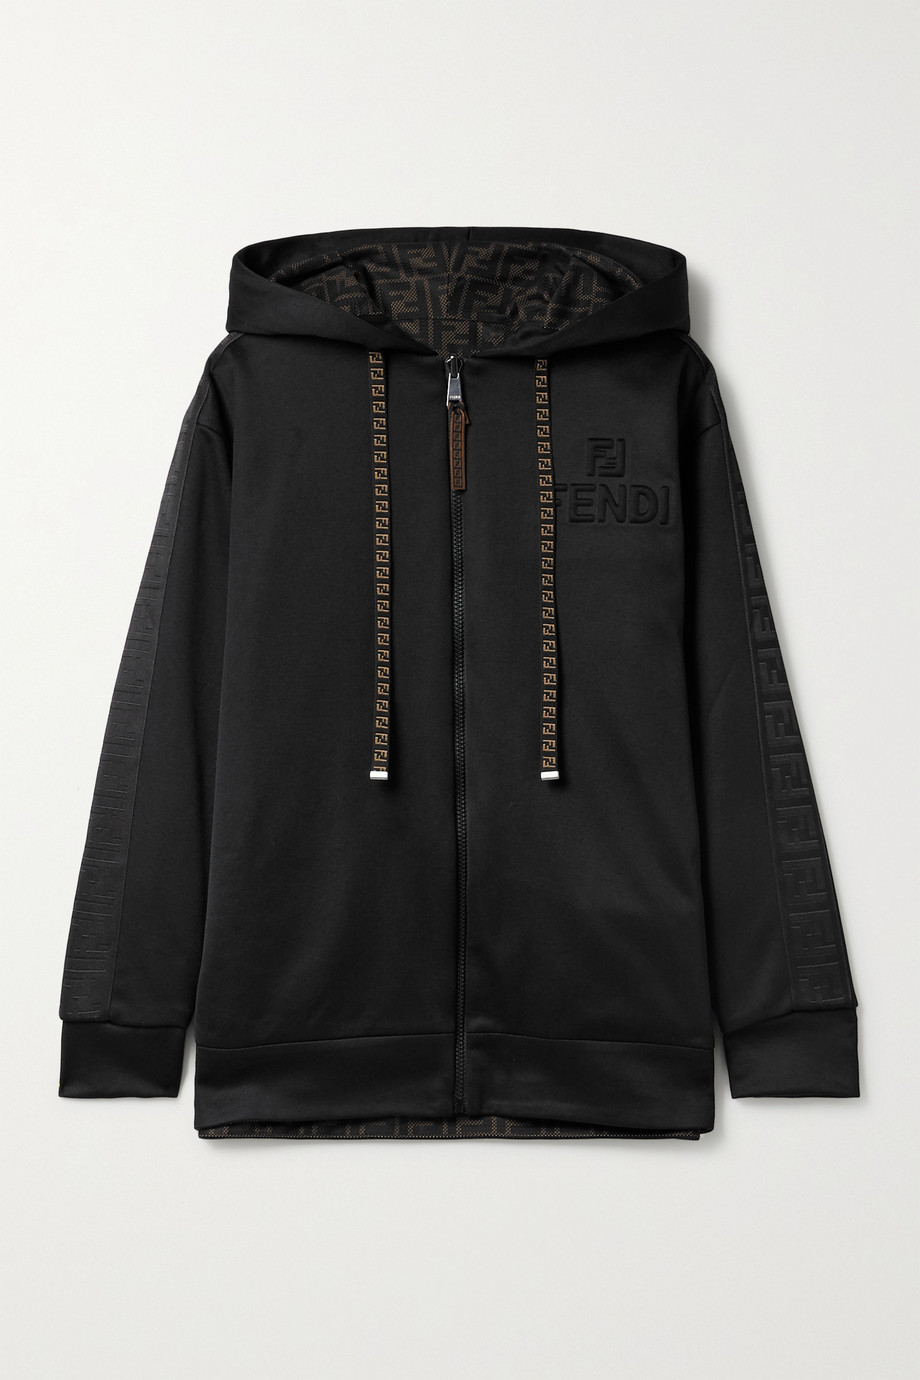 Fendi Reversible tech-jersey and printed mesh hoodie